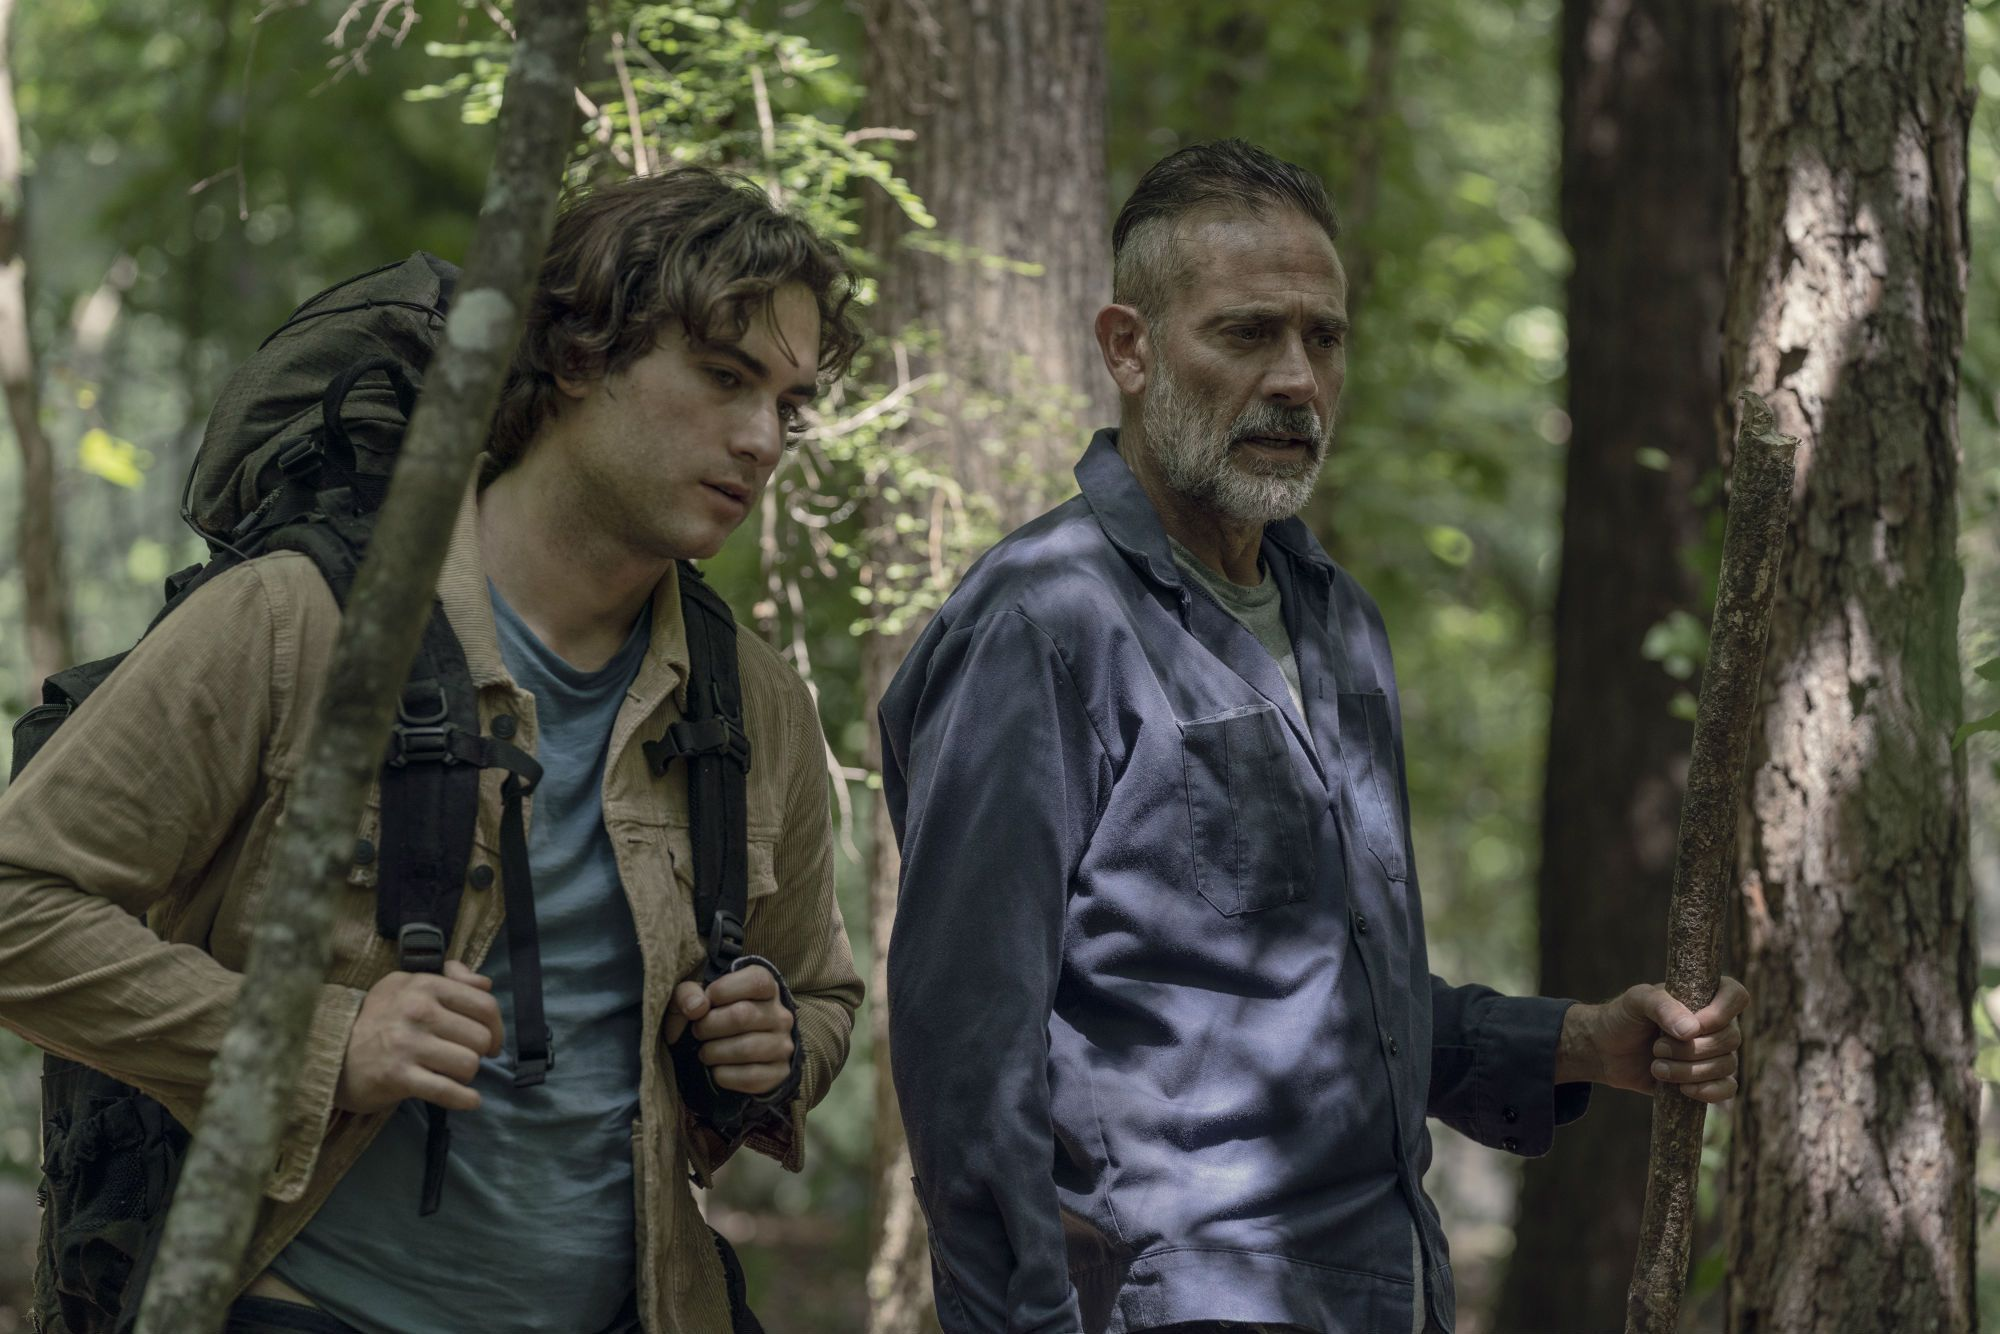 How to Watch The Walking Dead Season 10 on Netflix - Best VPNs To Use